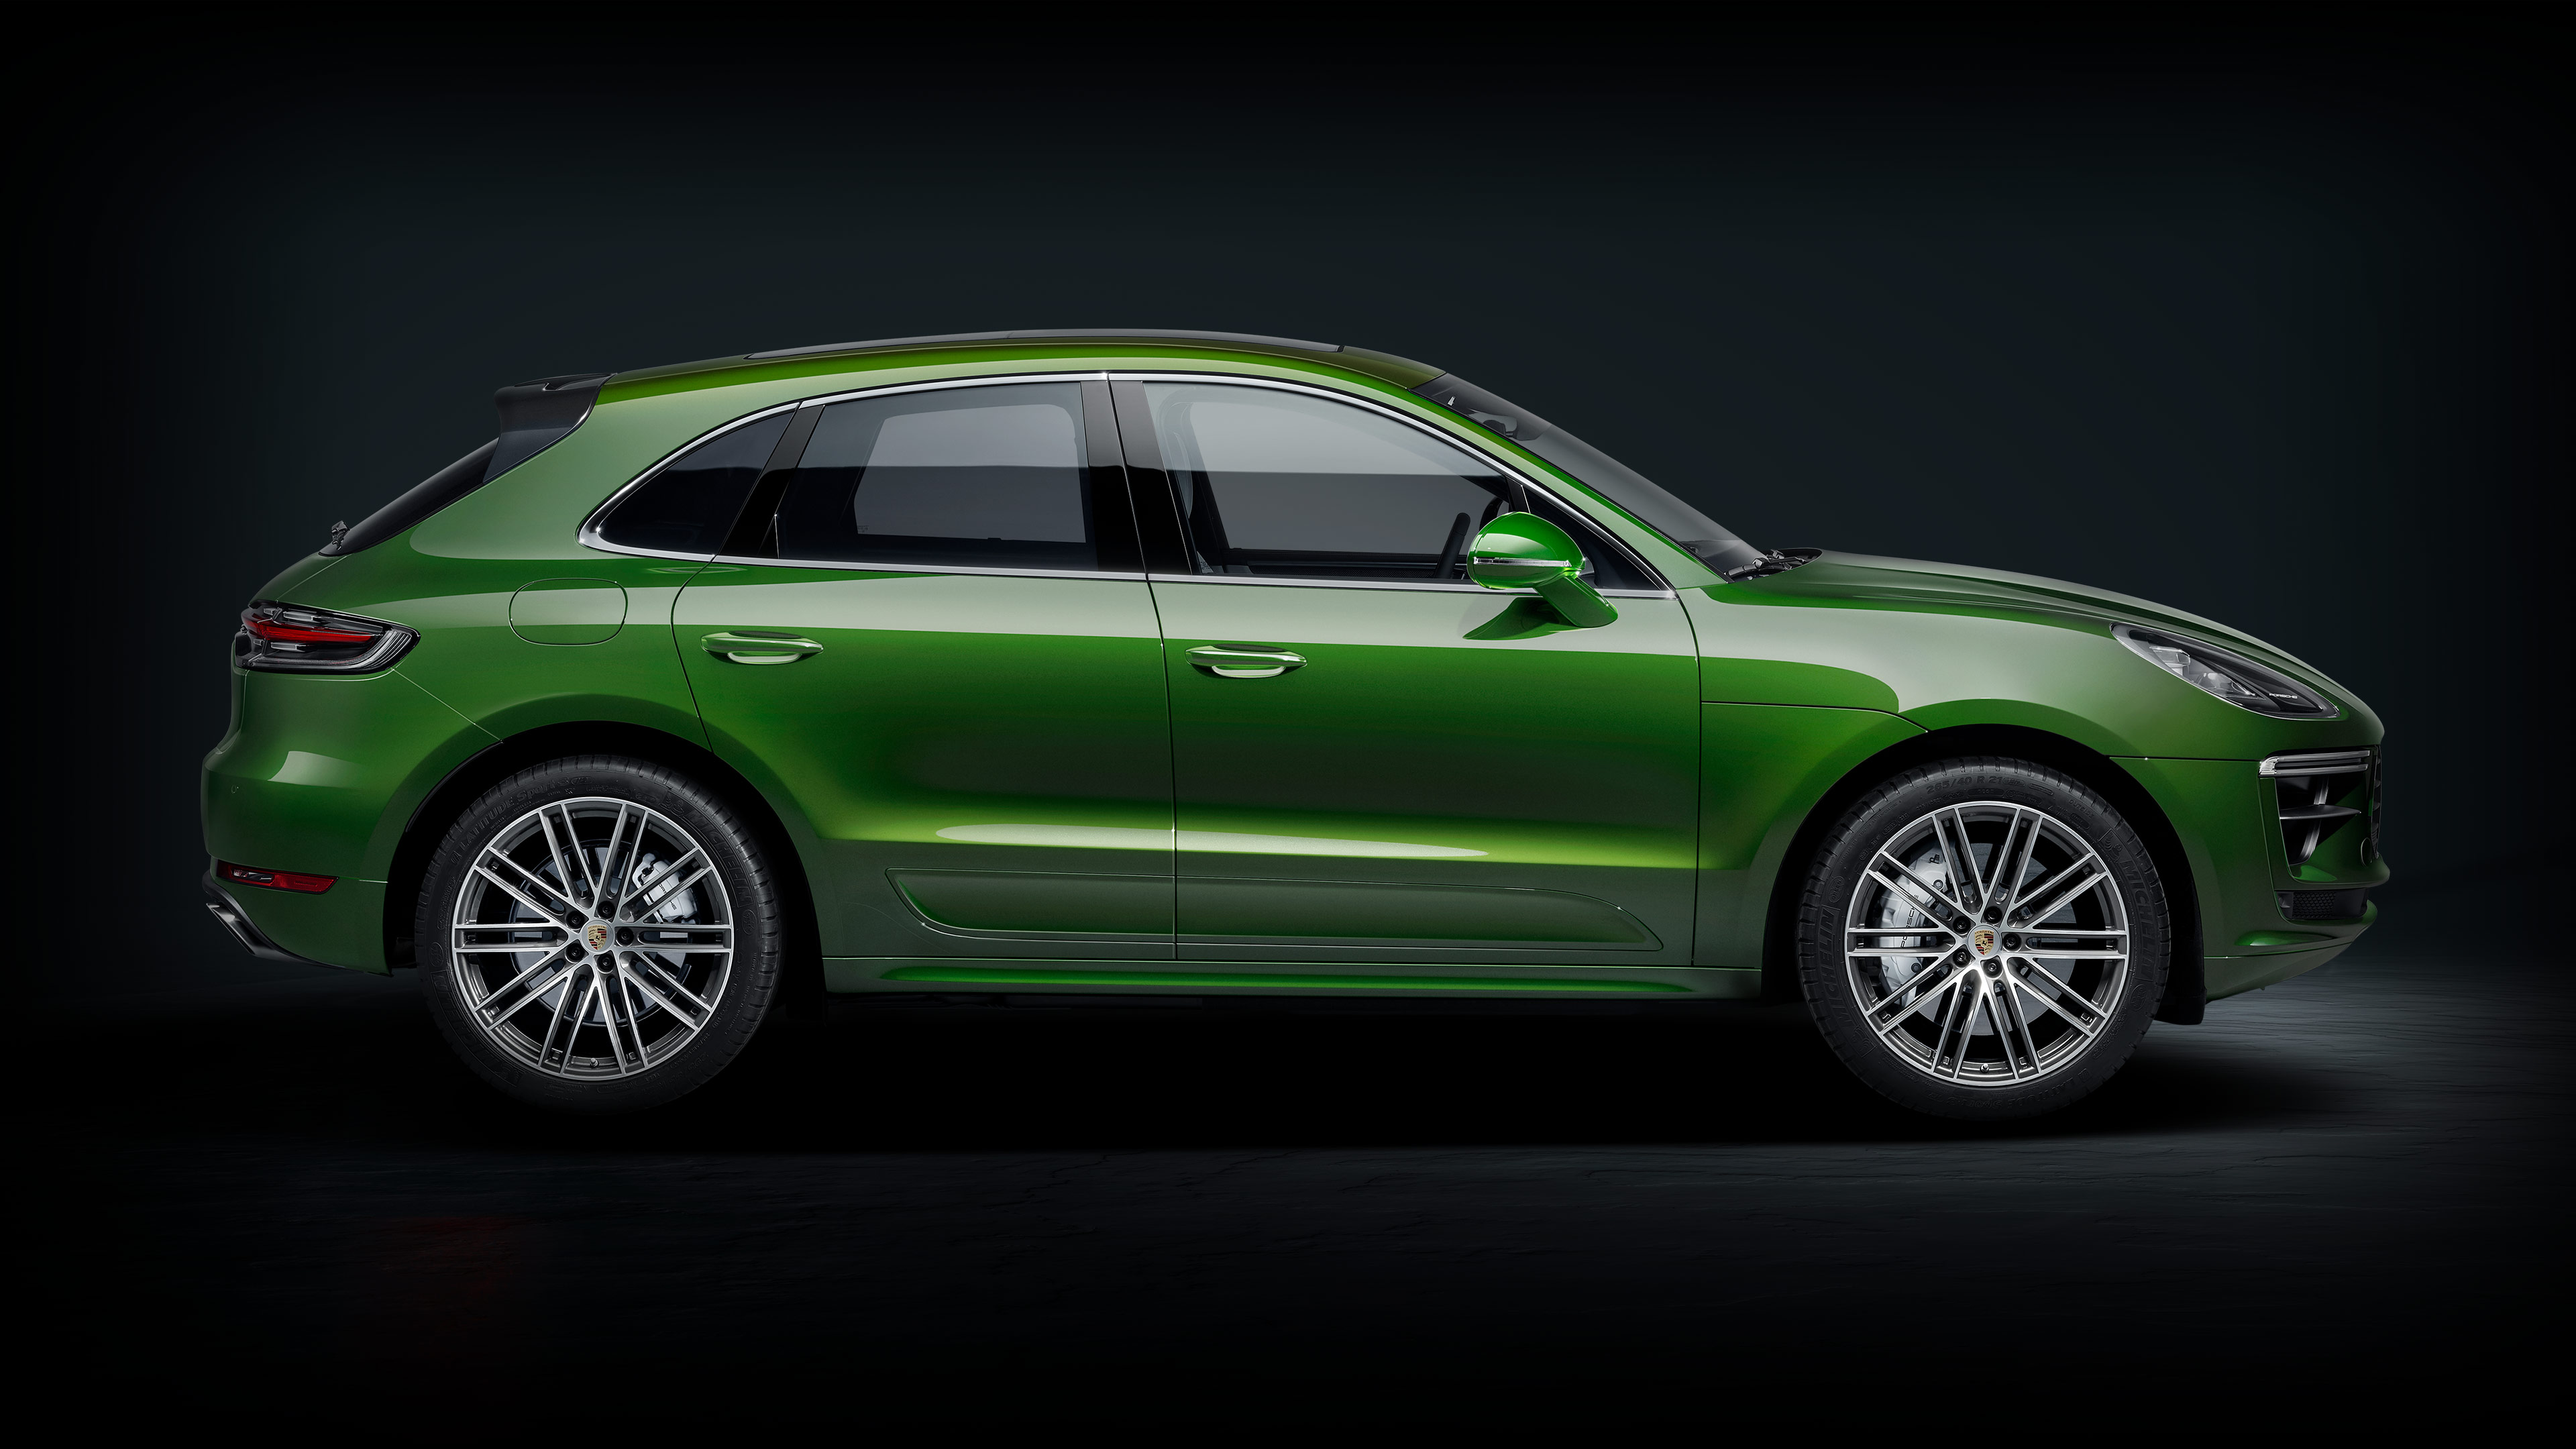 Porsche Macan Turbo - Technical Specs